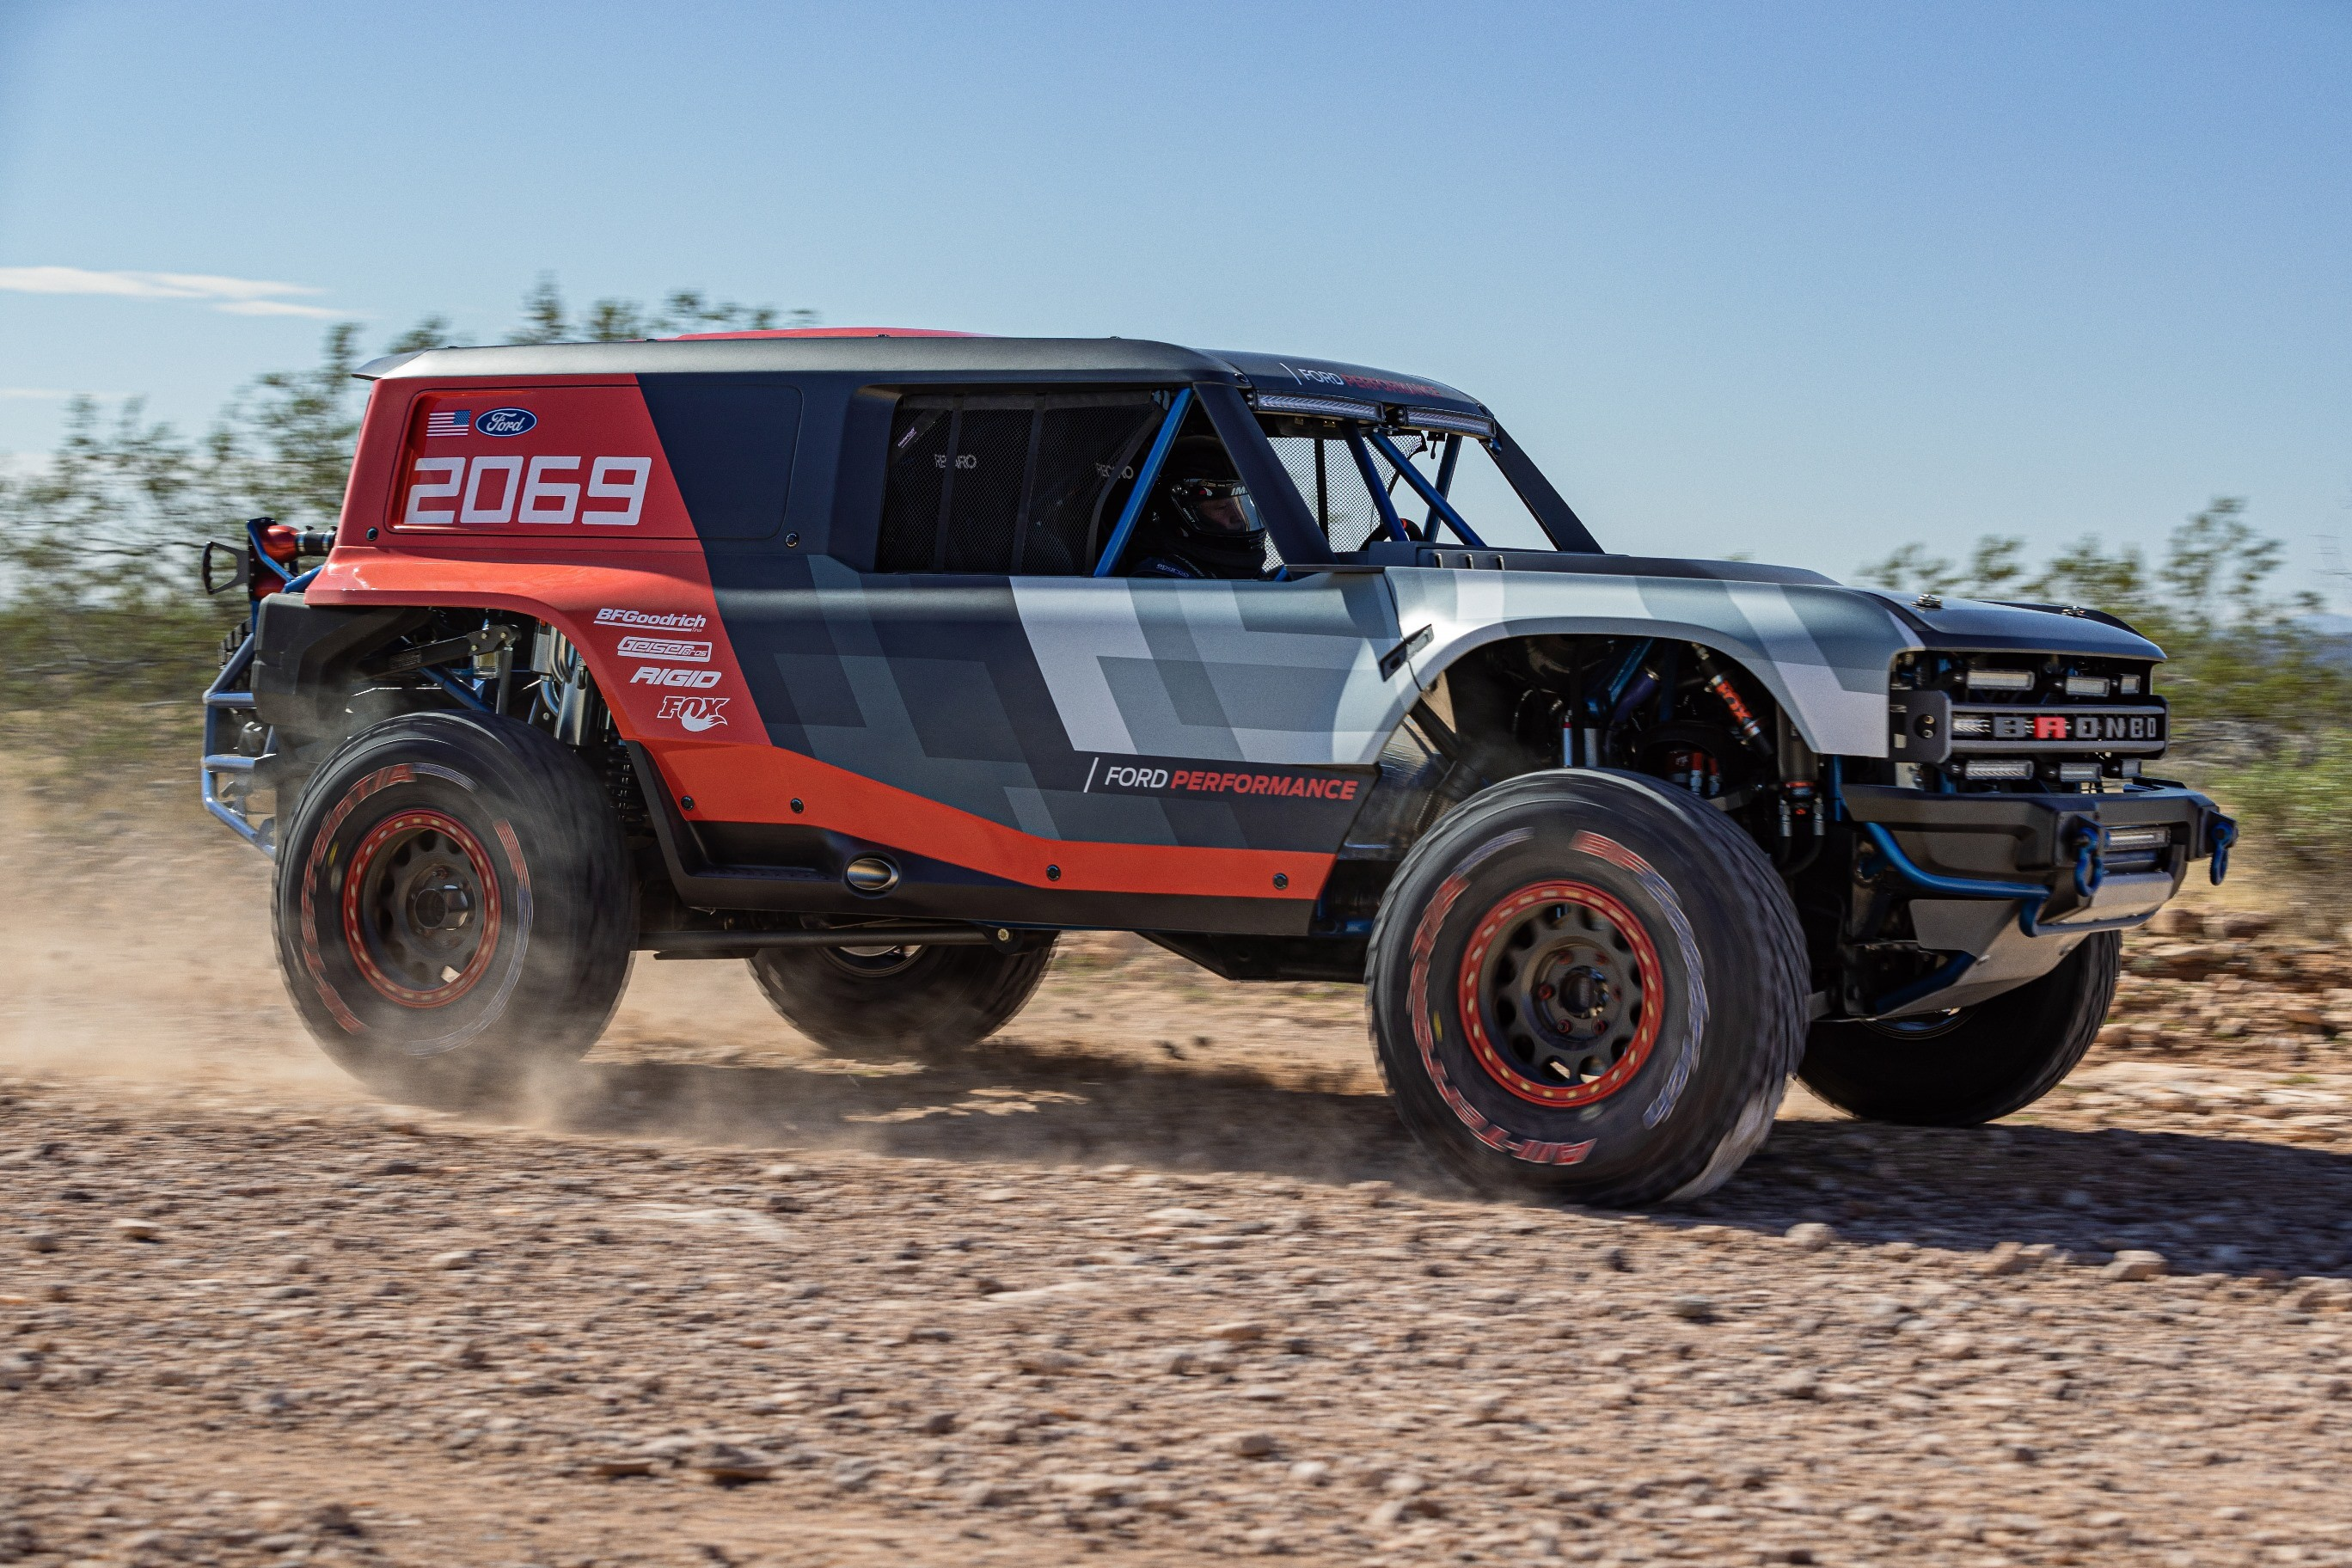 experimental 2021 ford bronco prototype shows off-road chops in johnson valley